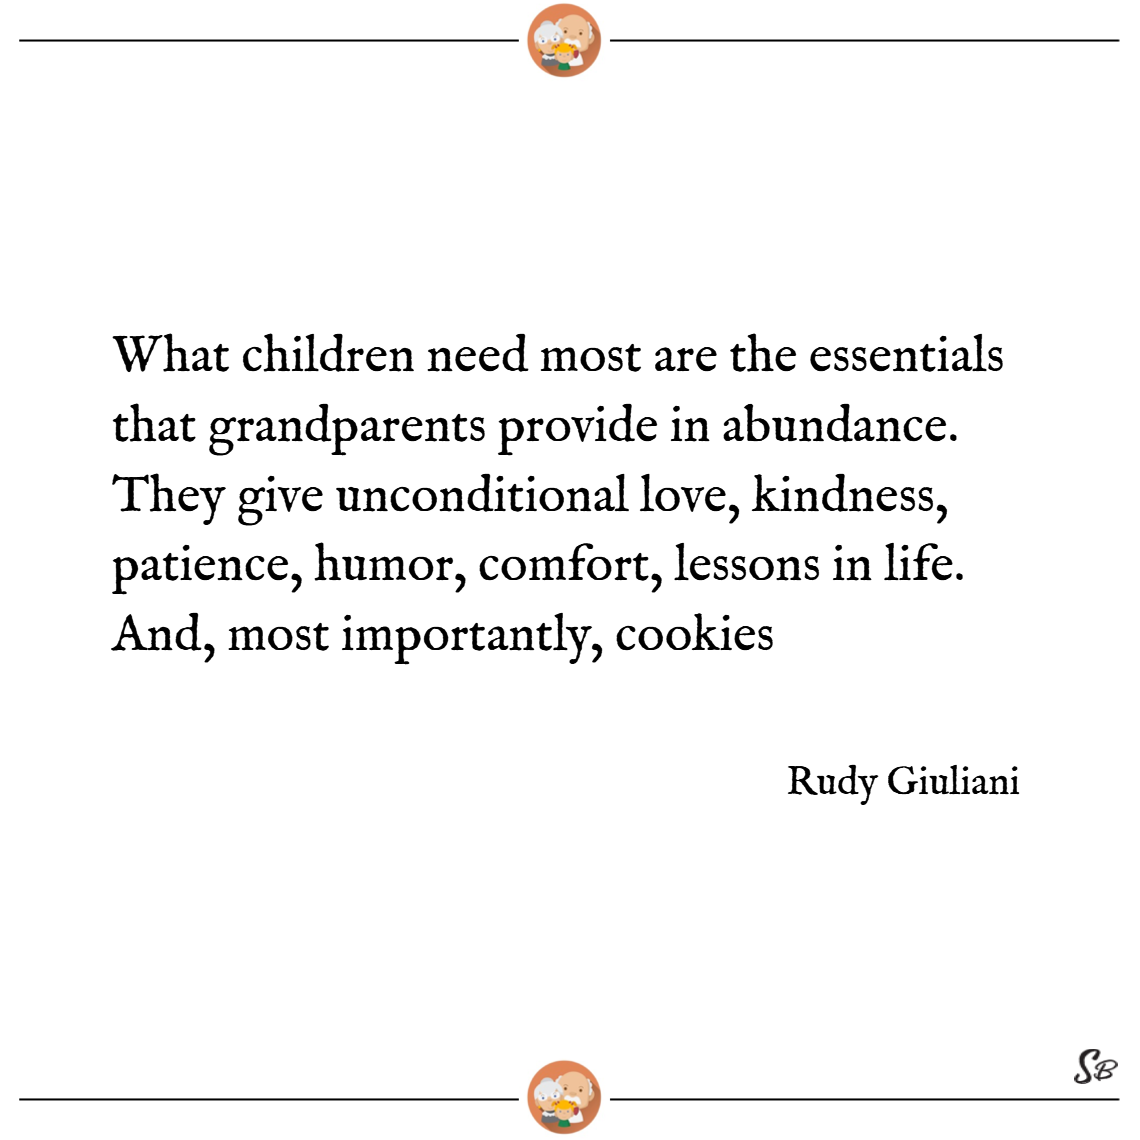 Quotes Unconditional Love 31 Heartwarming Grandparent And Grandchild Quotes  Page 12 Of 18